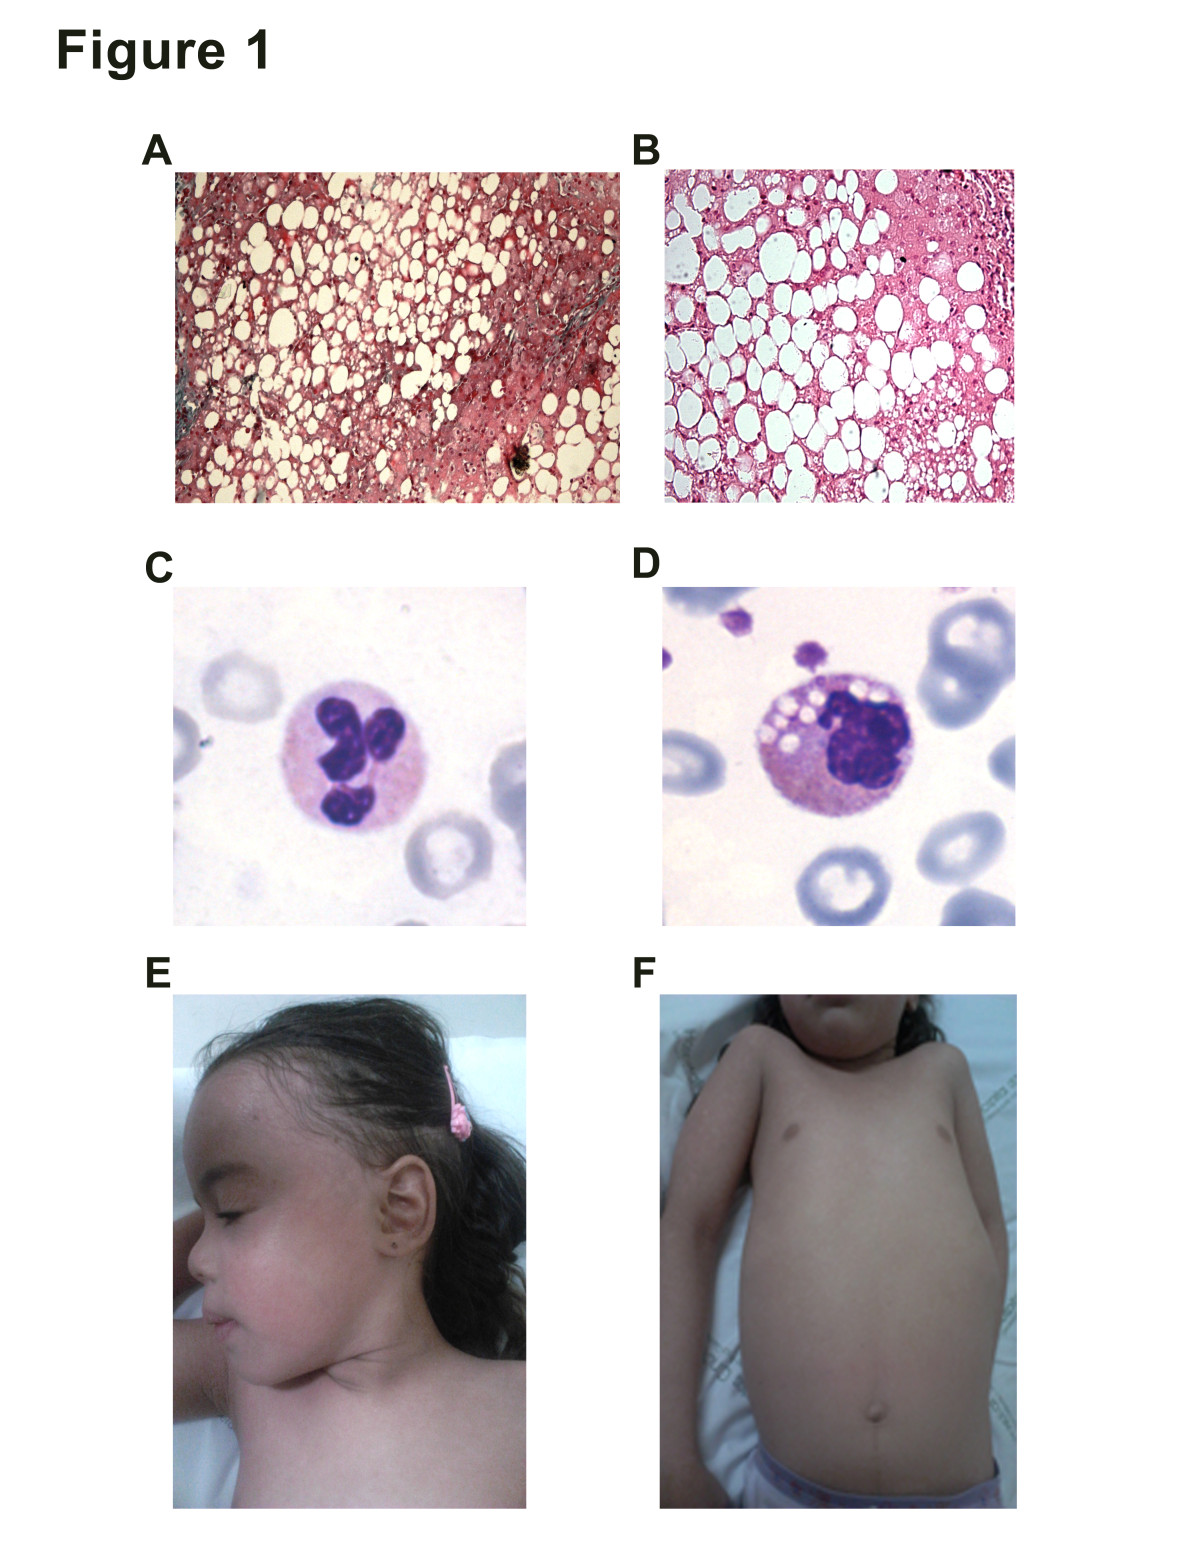 https://static-content.springer.com/image/art%3A10.1186%2F1471-2350-15-32/MediaObjects/12881_2013_Article_1271_Fig1_HTML.jpg